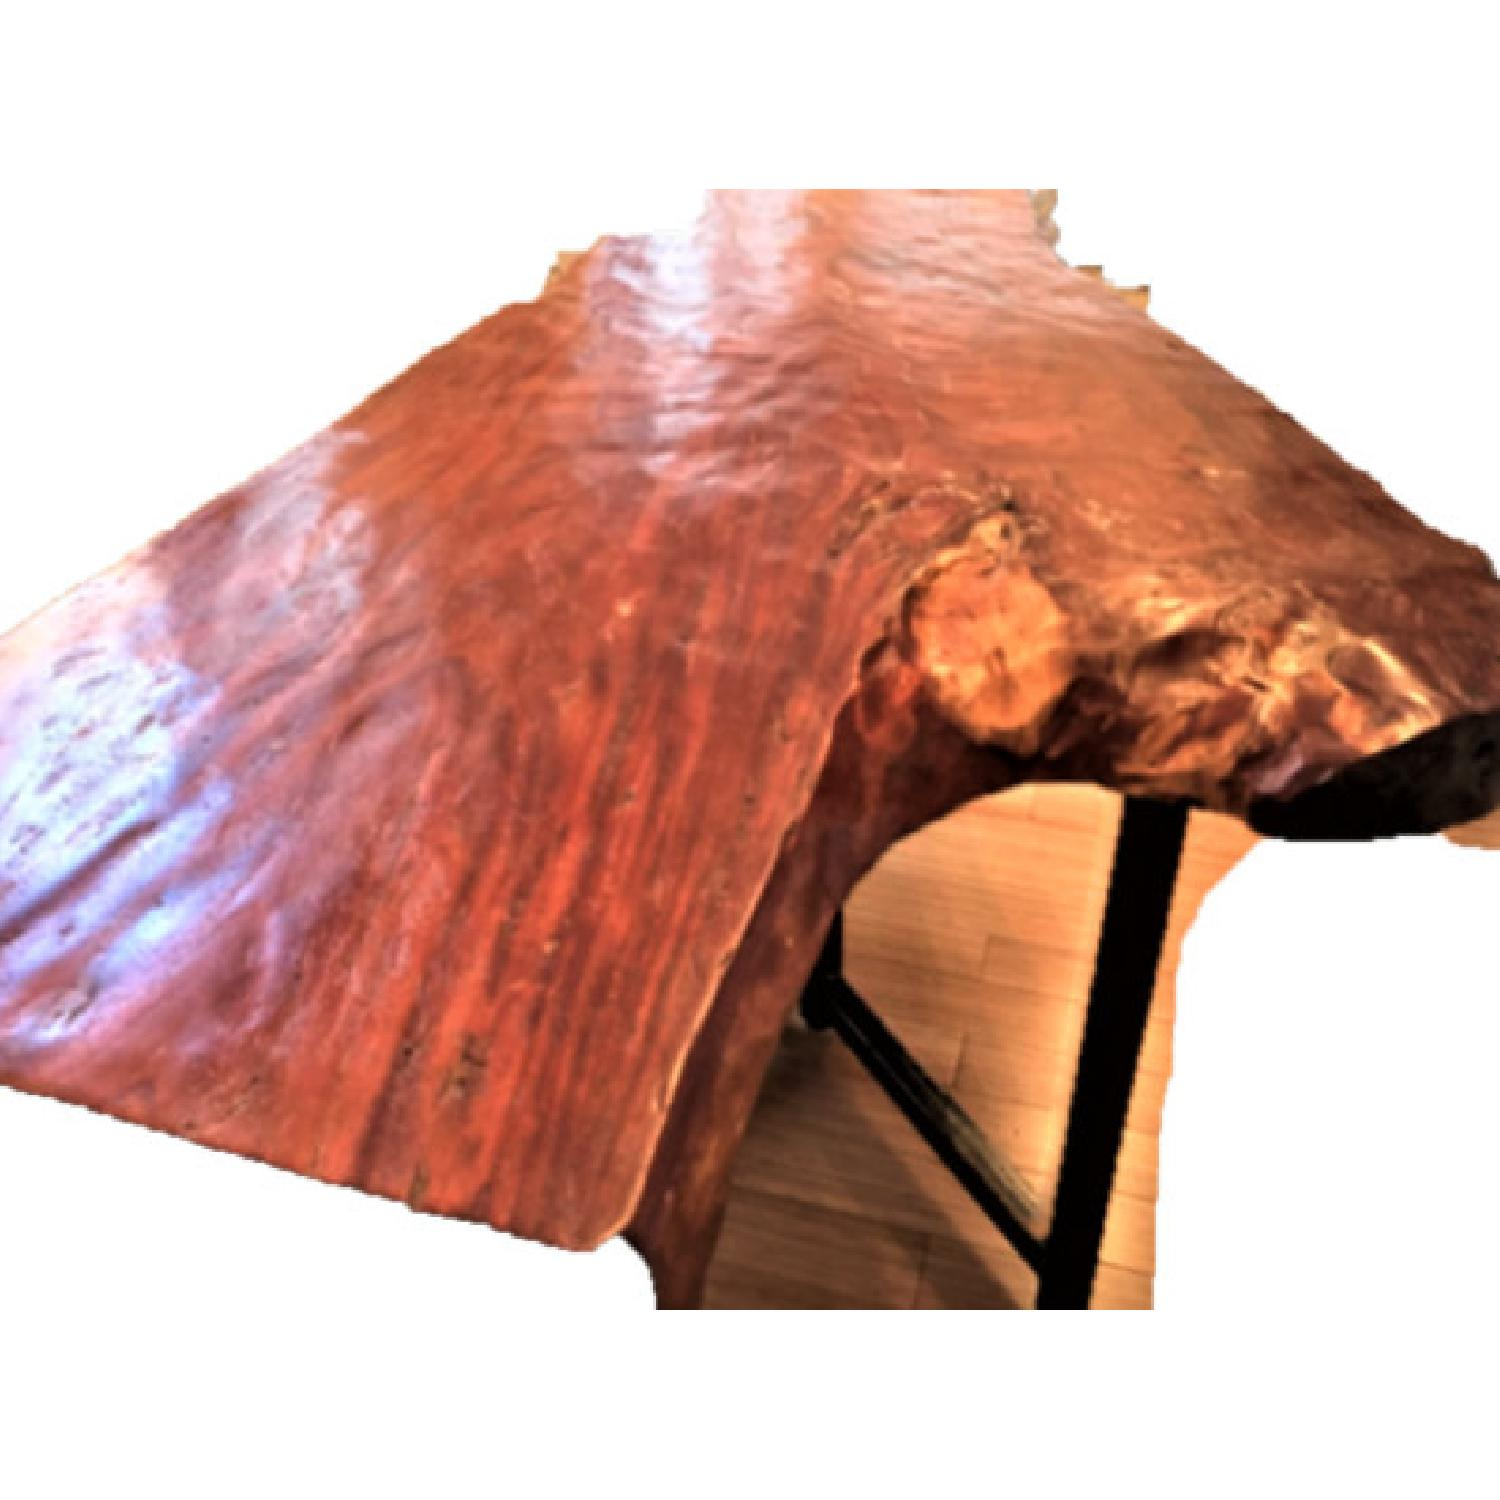 From The Source Hand-Crafted Teak Slab Dining Table - image-5